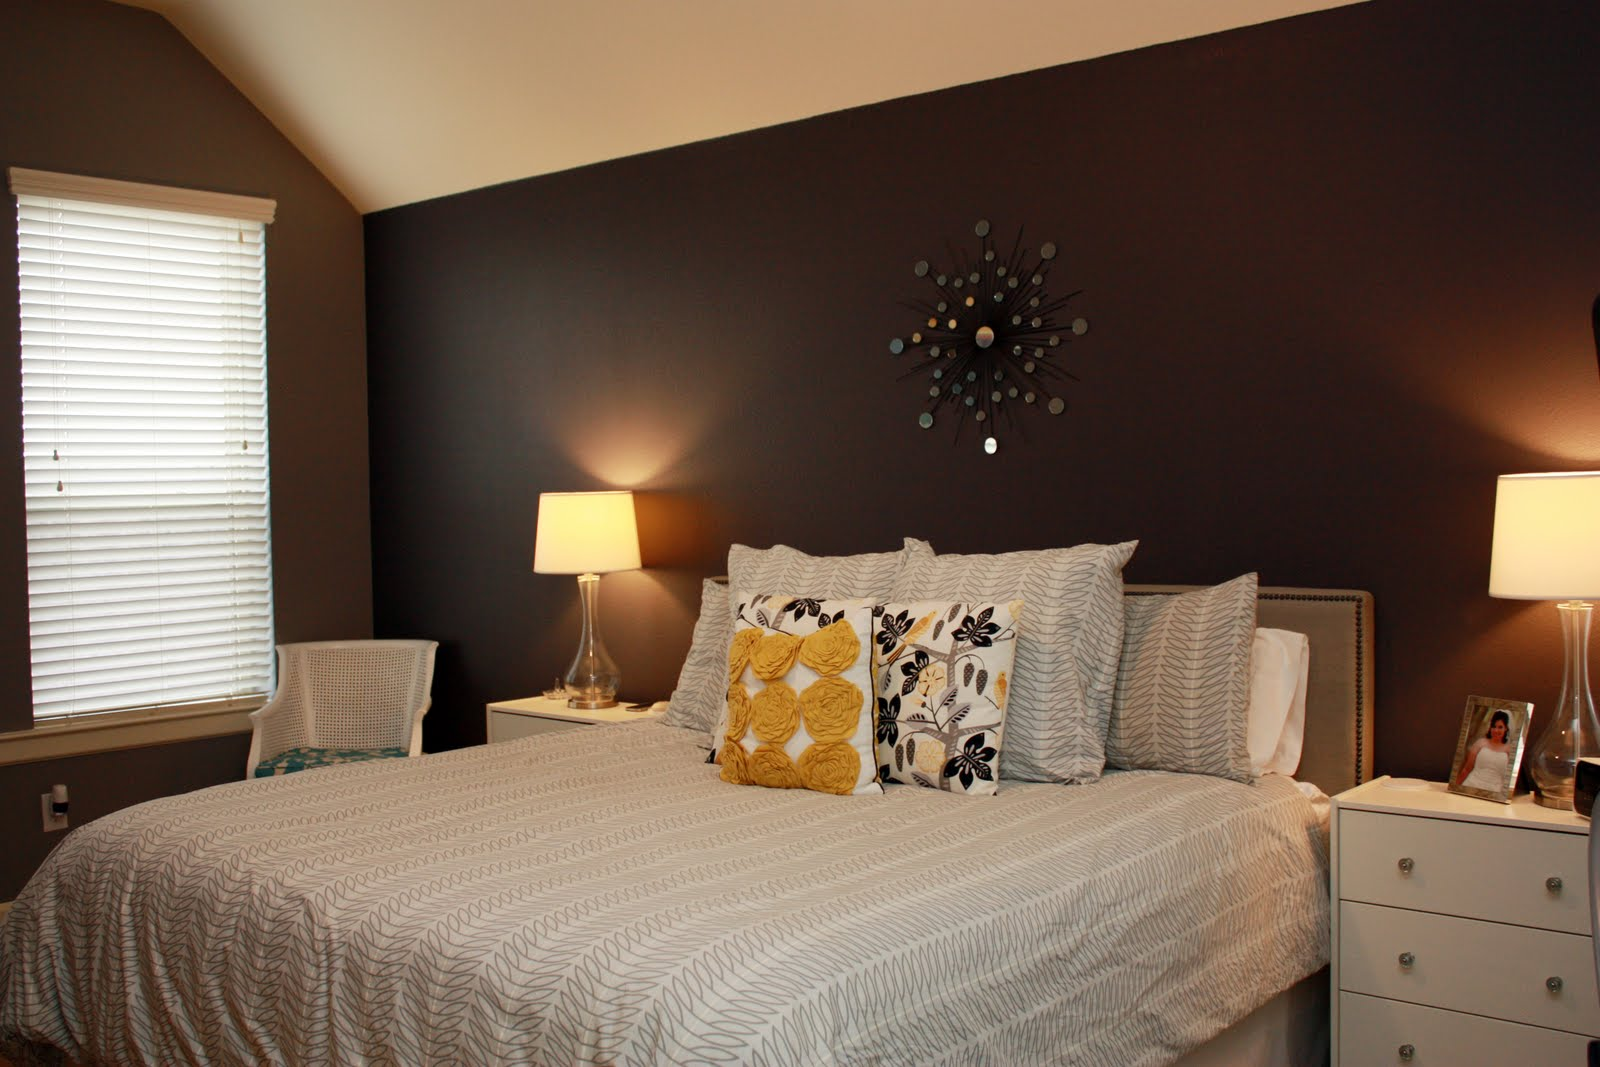 Wallpaper Accent Wall Bedroom Pic New Posts Wallpaper Accent Wall Master Bedroom